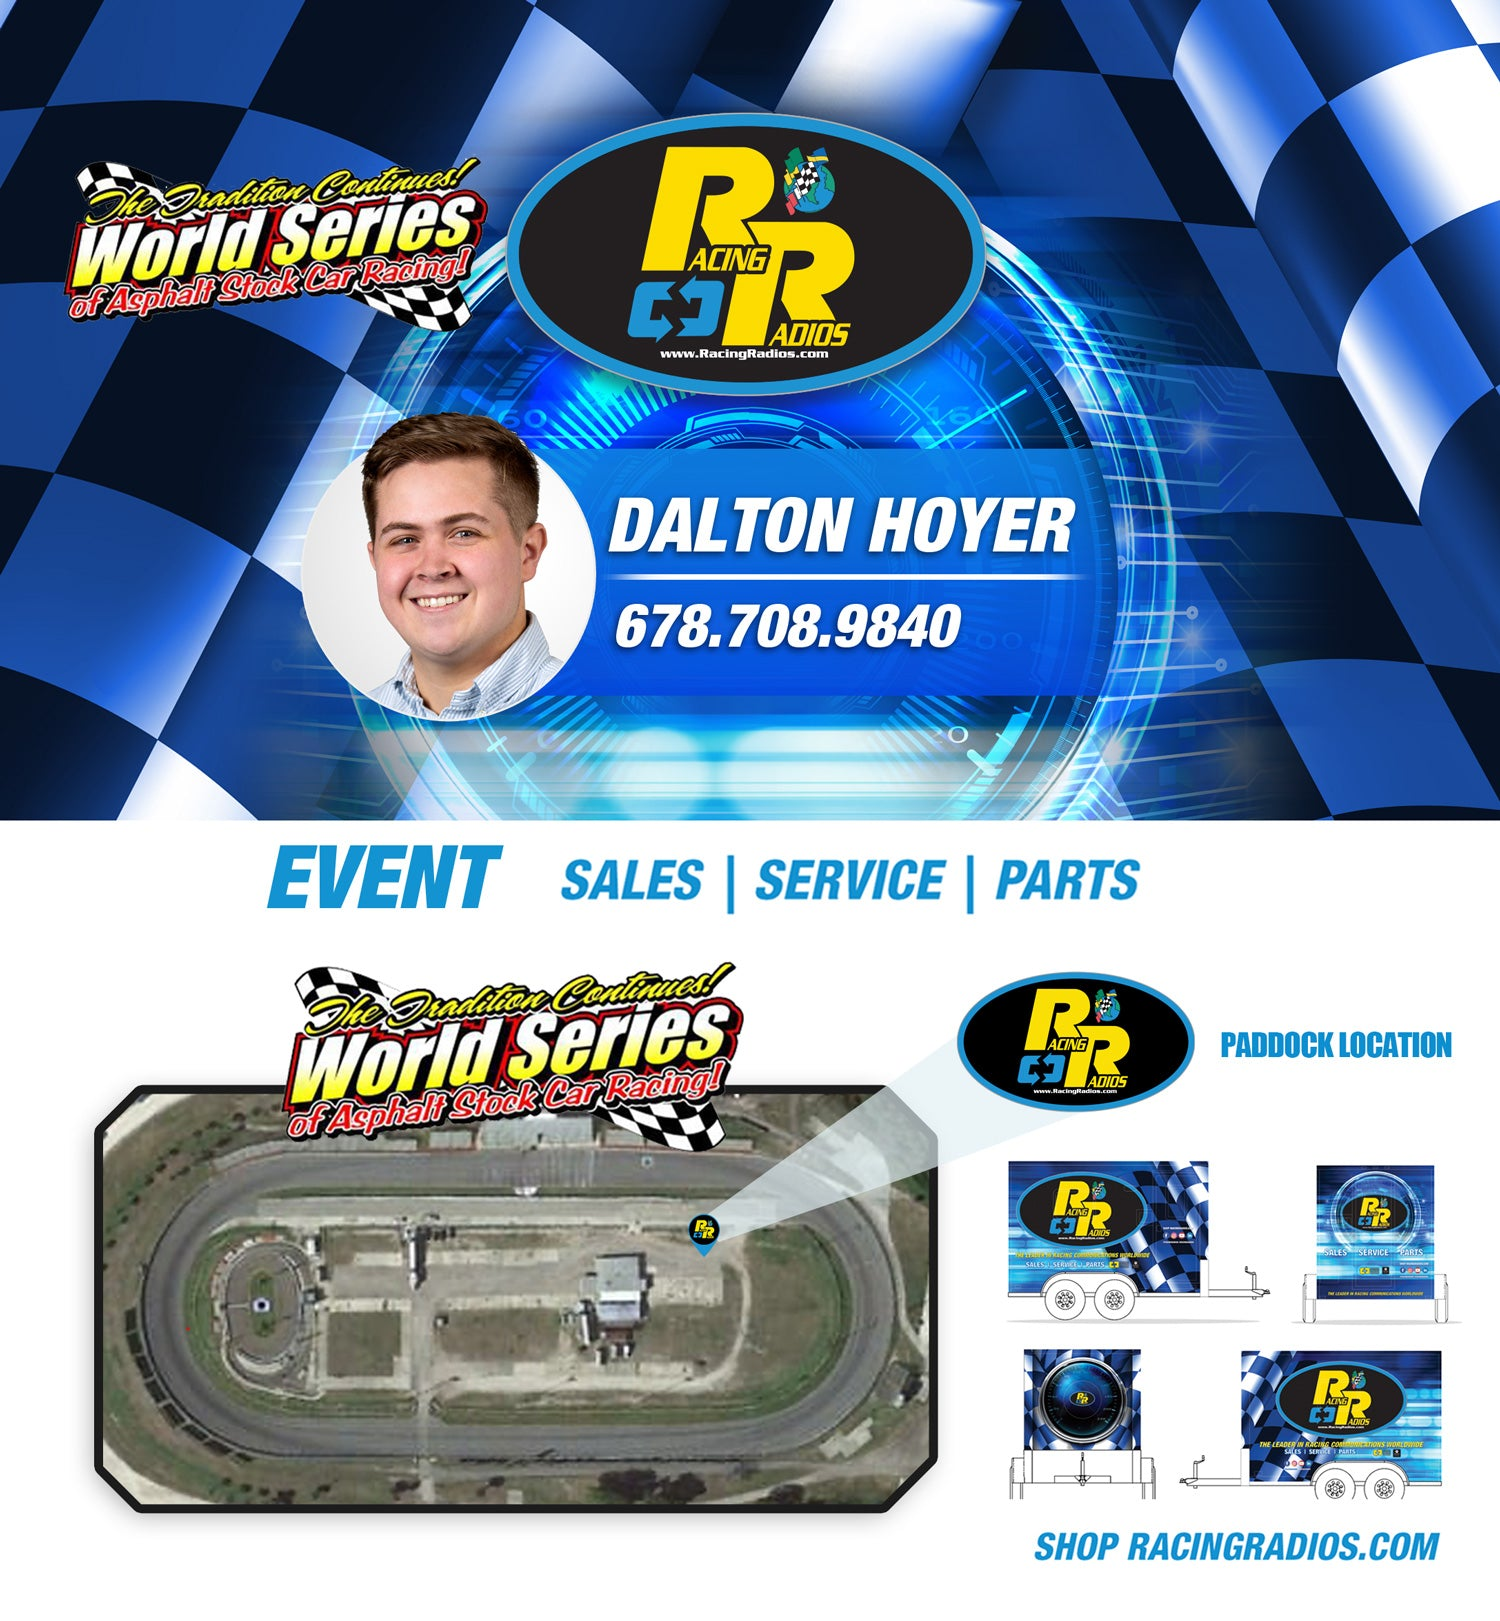 Racing Radios Paddock Support New Smyrna Speedway | World Series of Asphalt Stock Car Racing